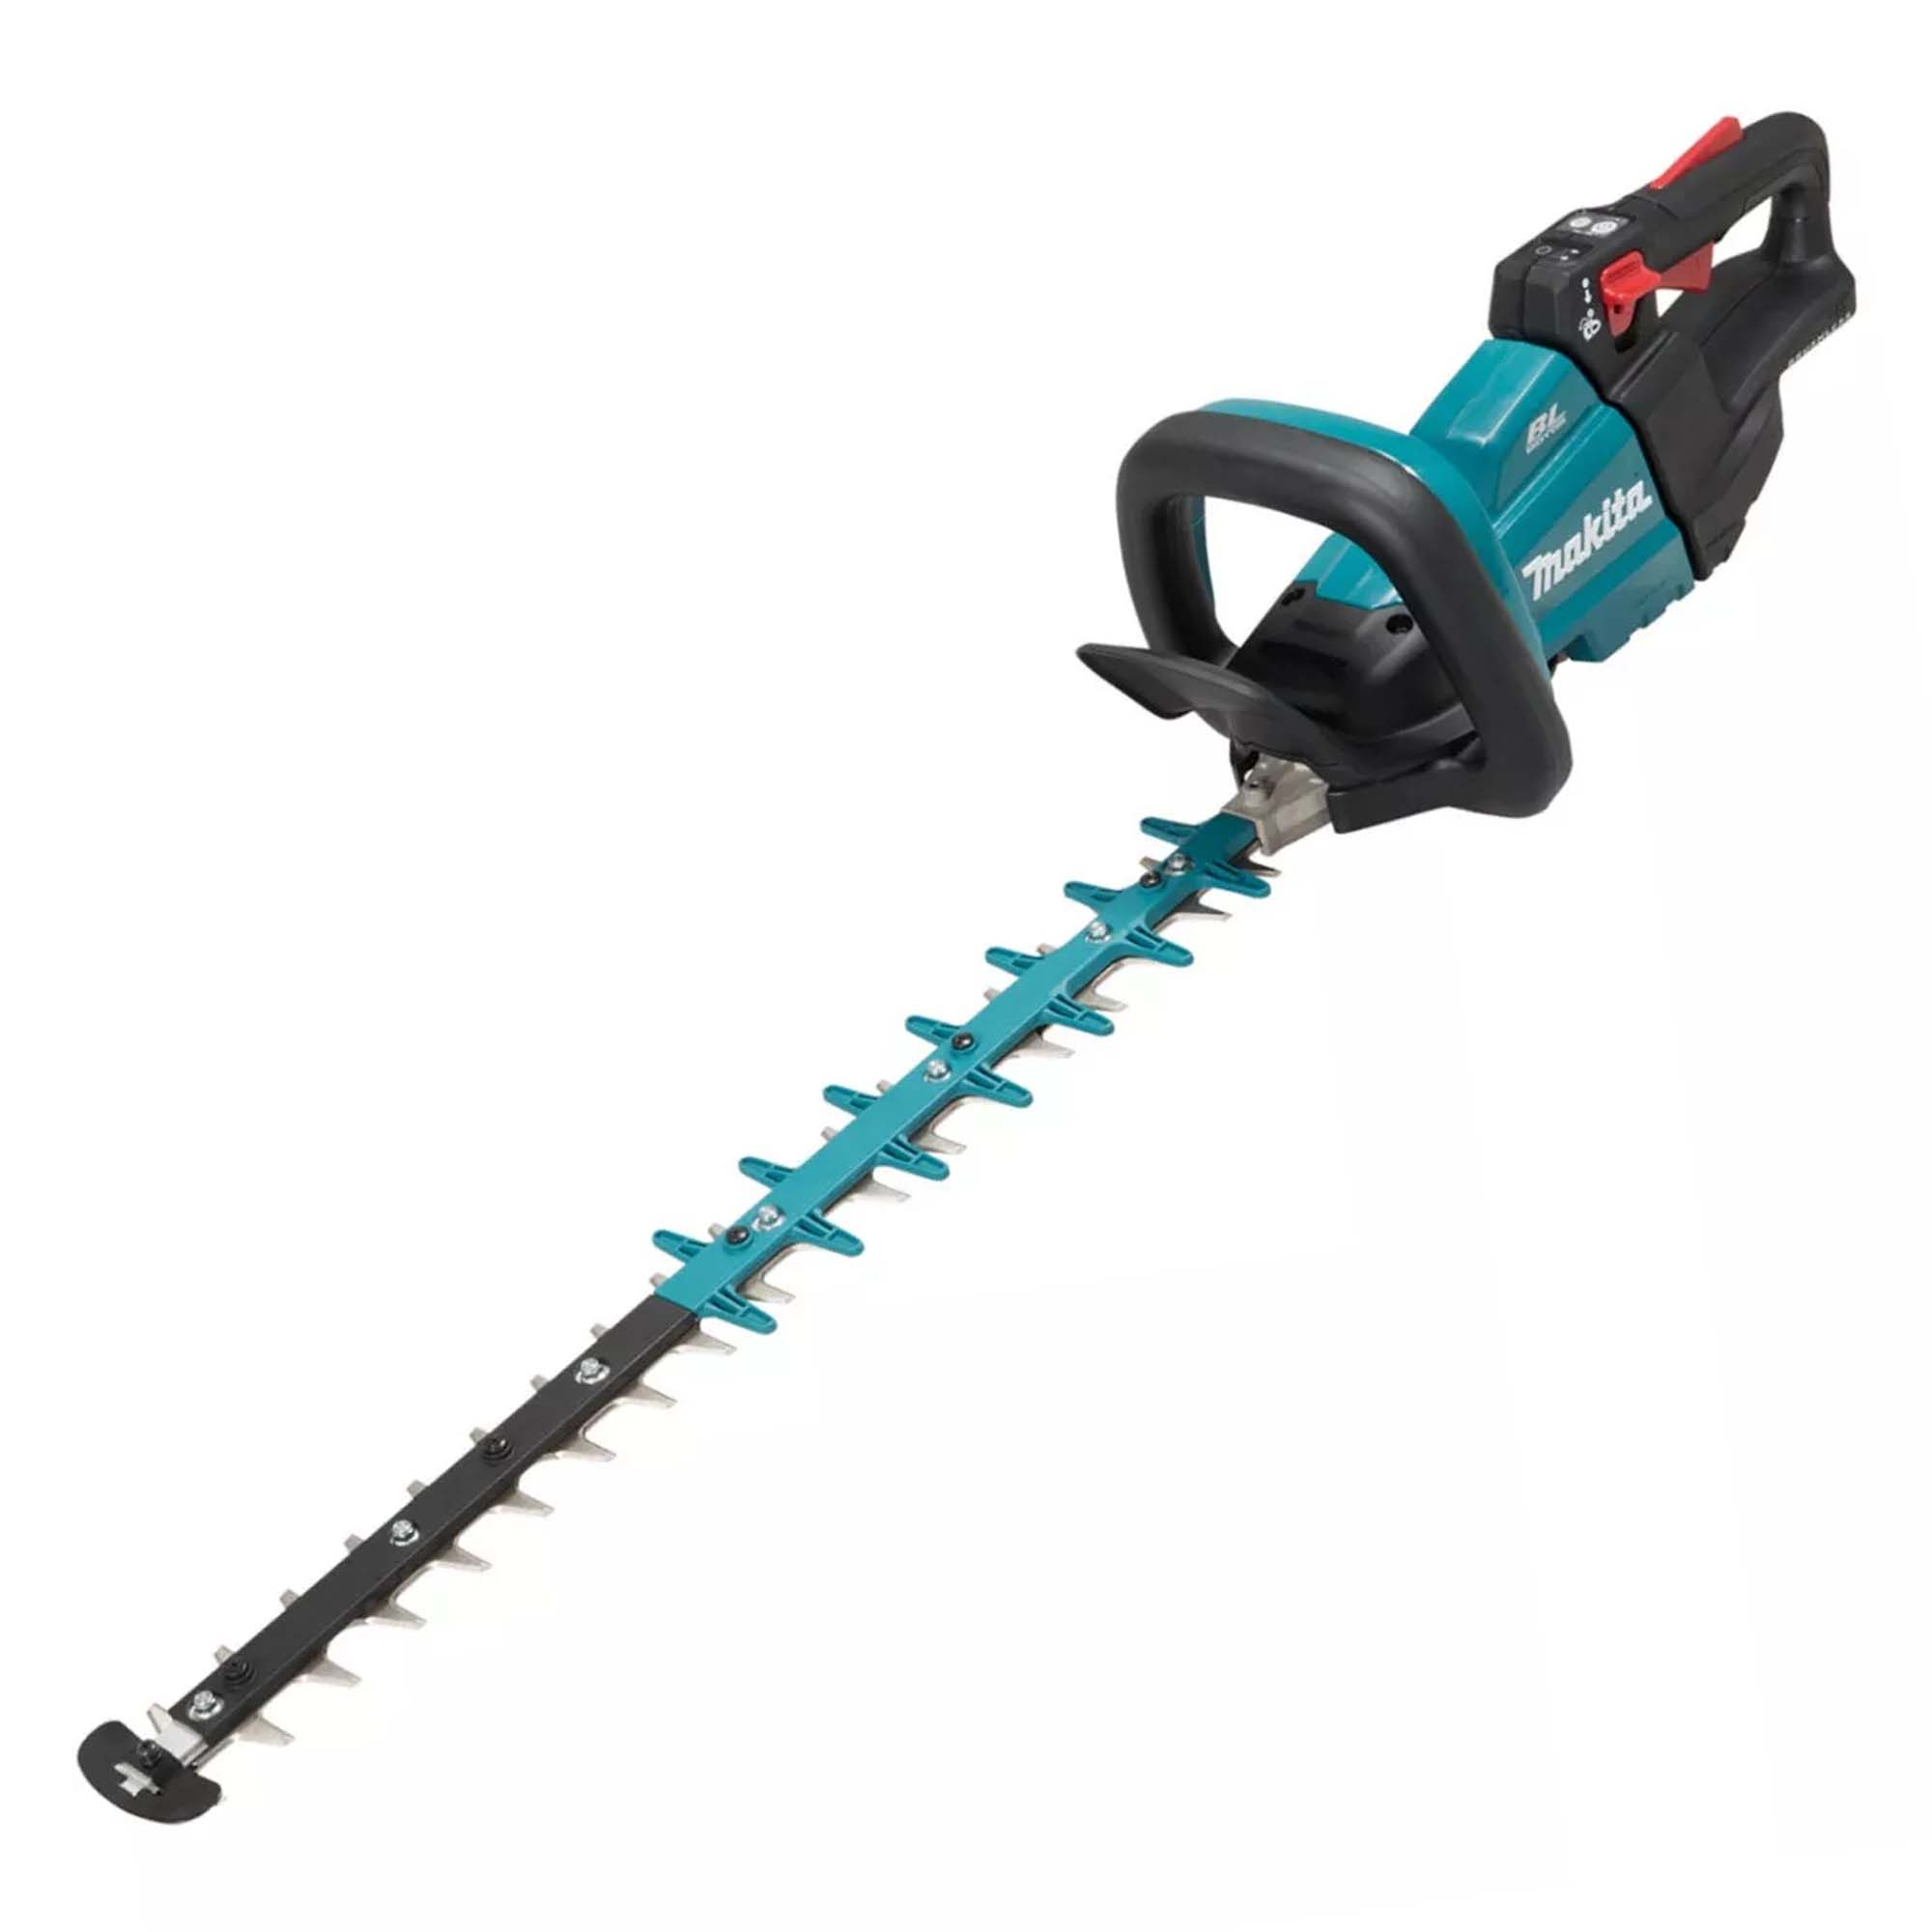 Ozito PXCHTK 18v Cordless Hedge Trimmer 460mm | Hedge Trimmers